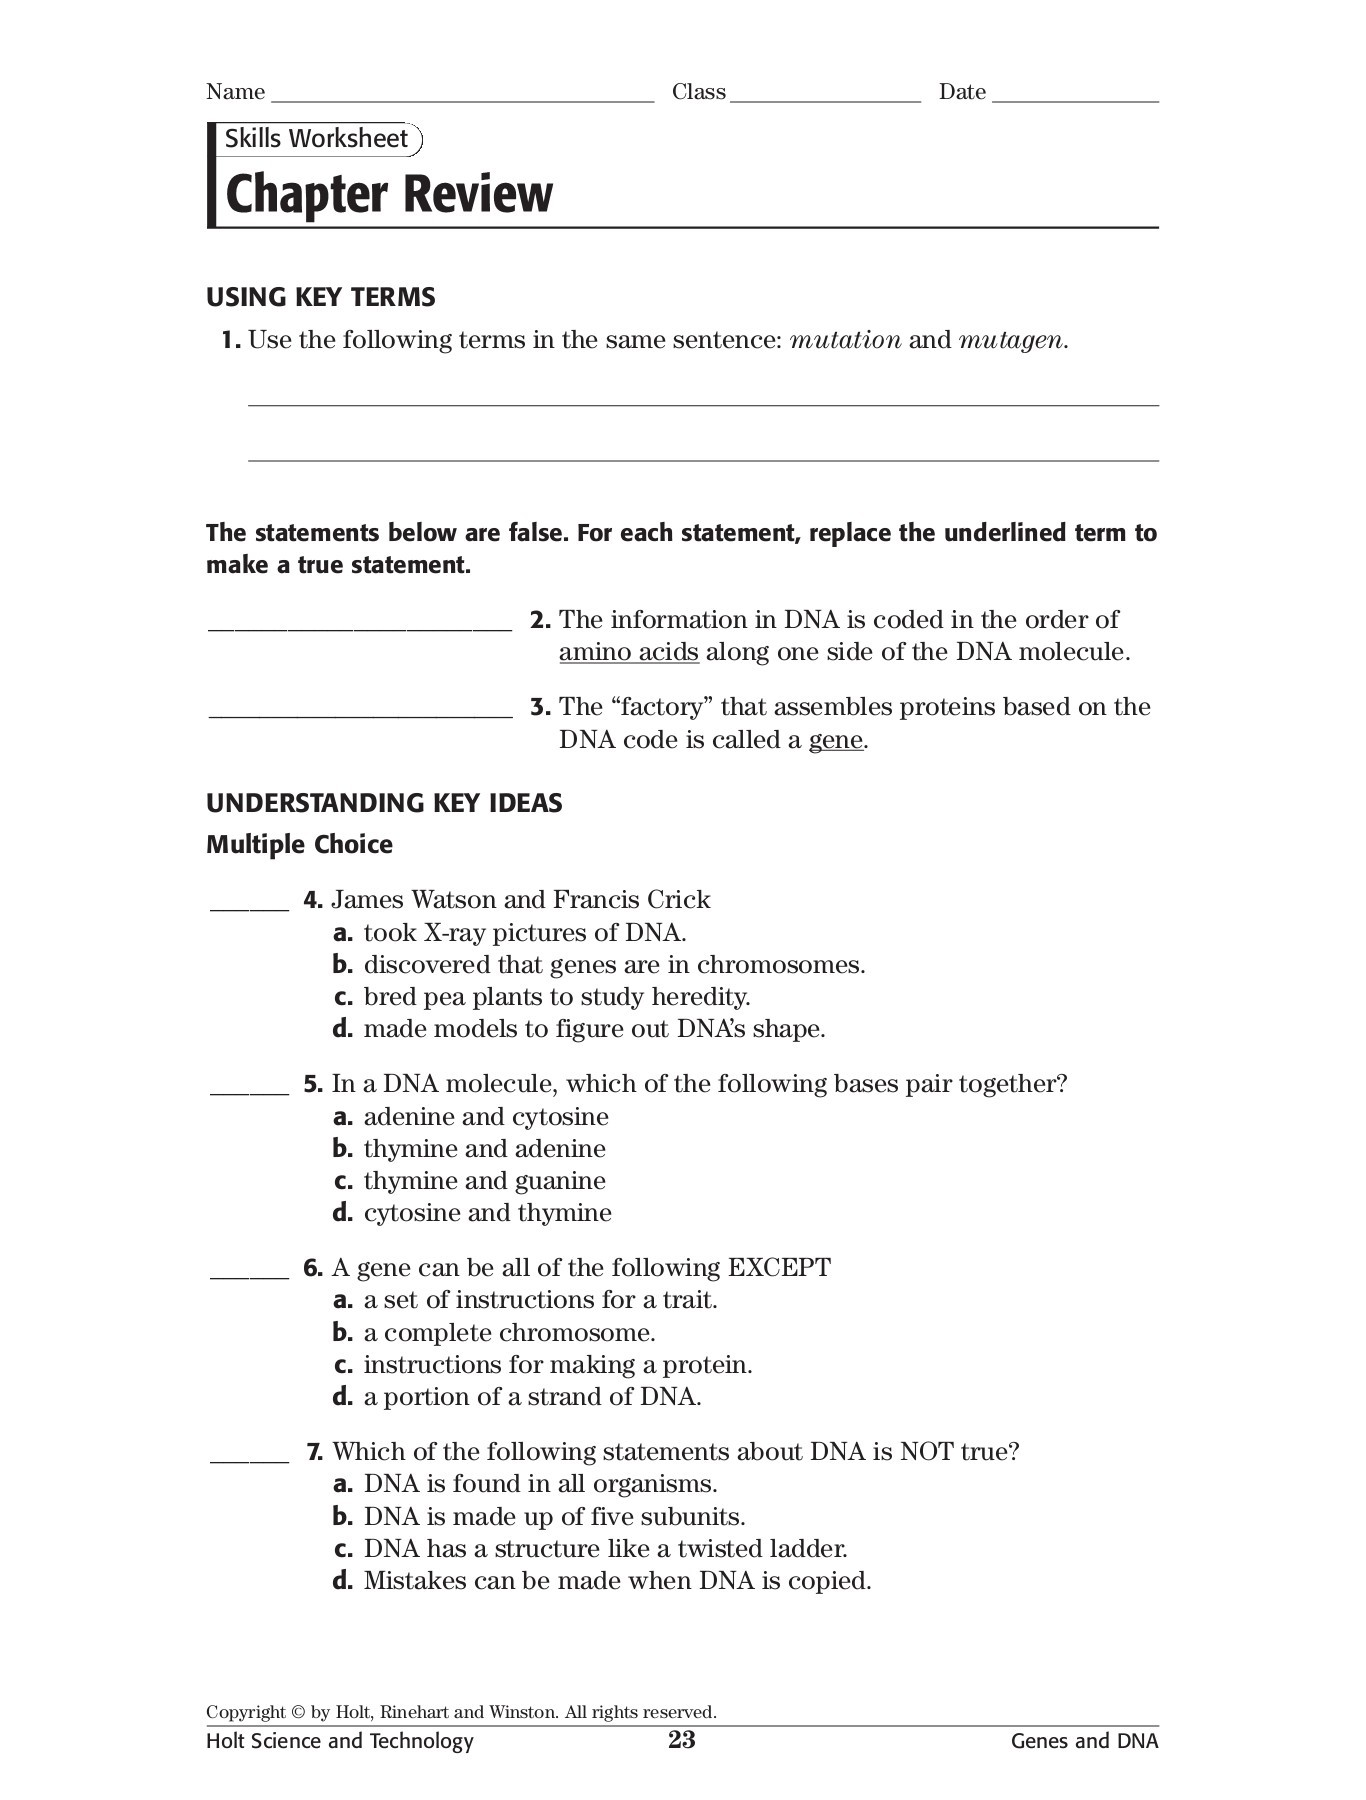 Printables Of Holt Rinehart And Winston Worksheet Answers